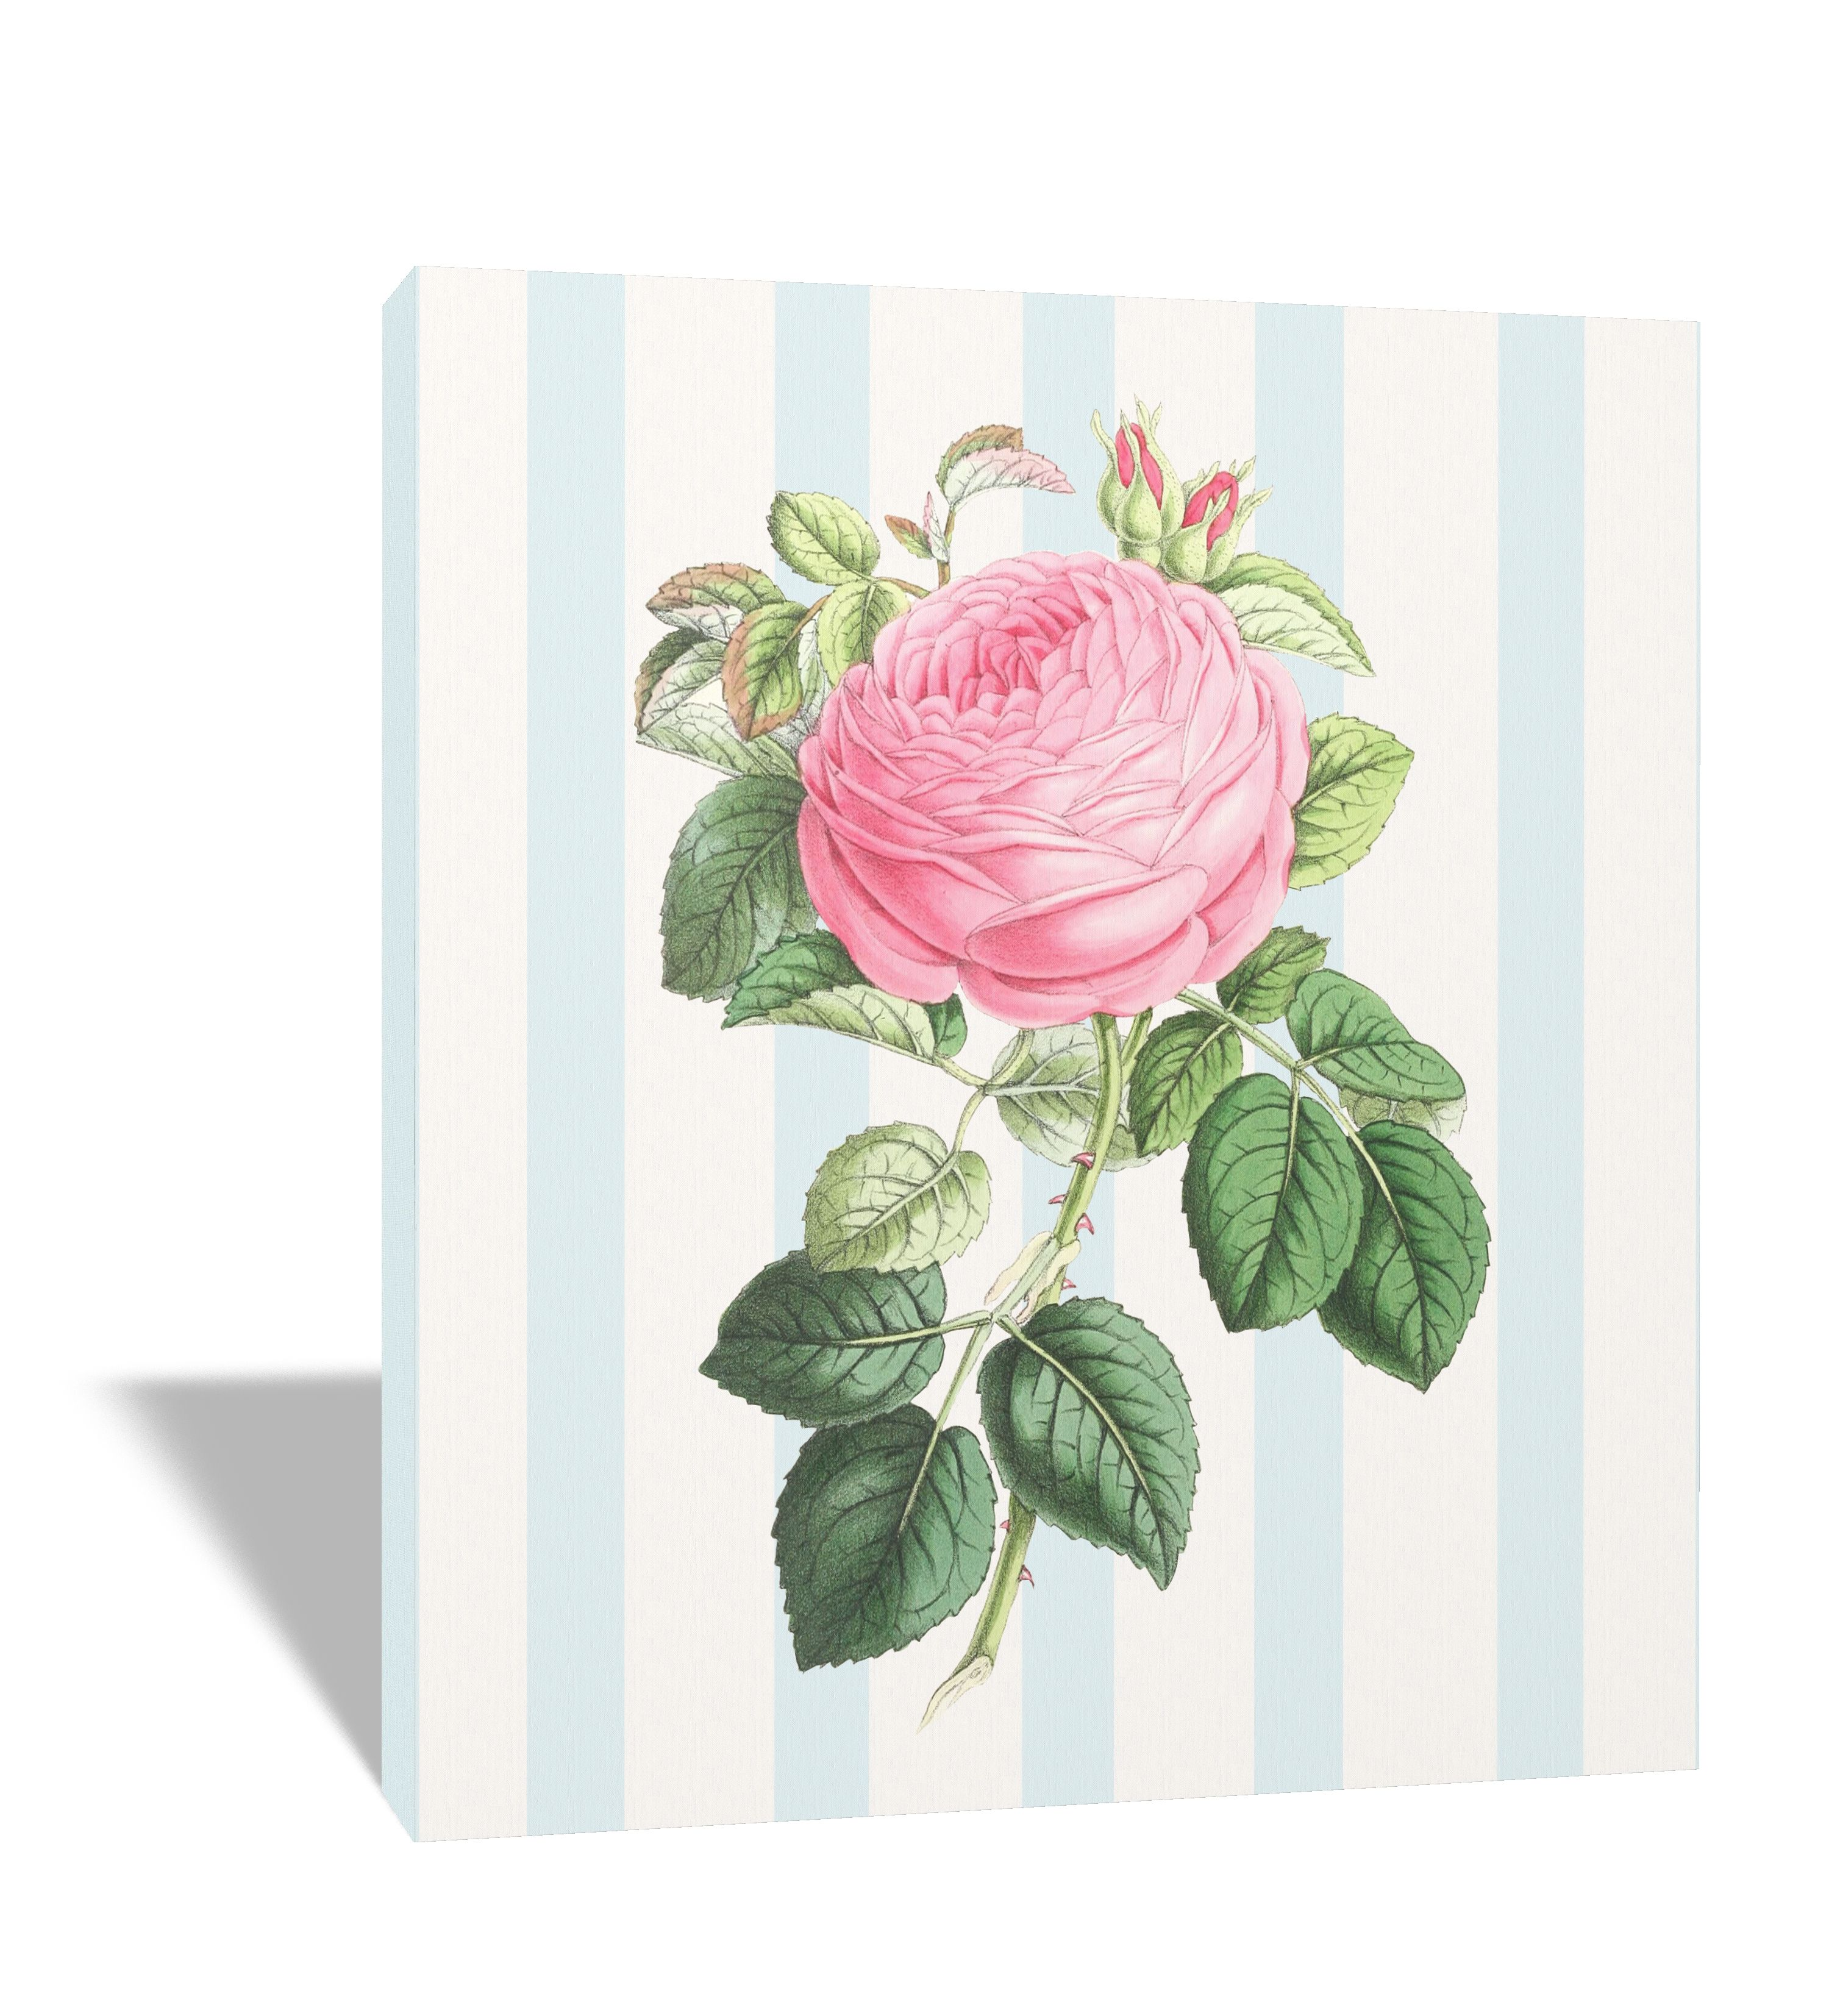 Shabby Chic canvas frame available on amazon